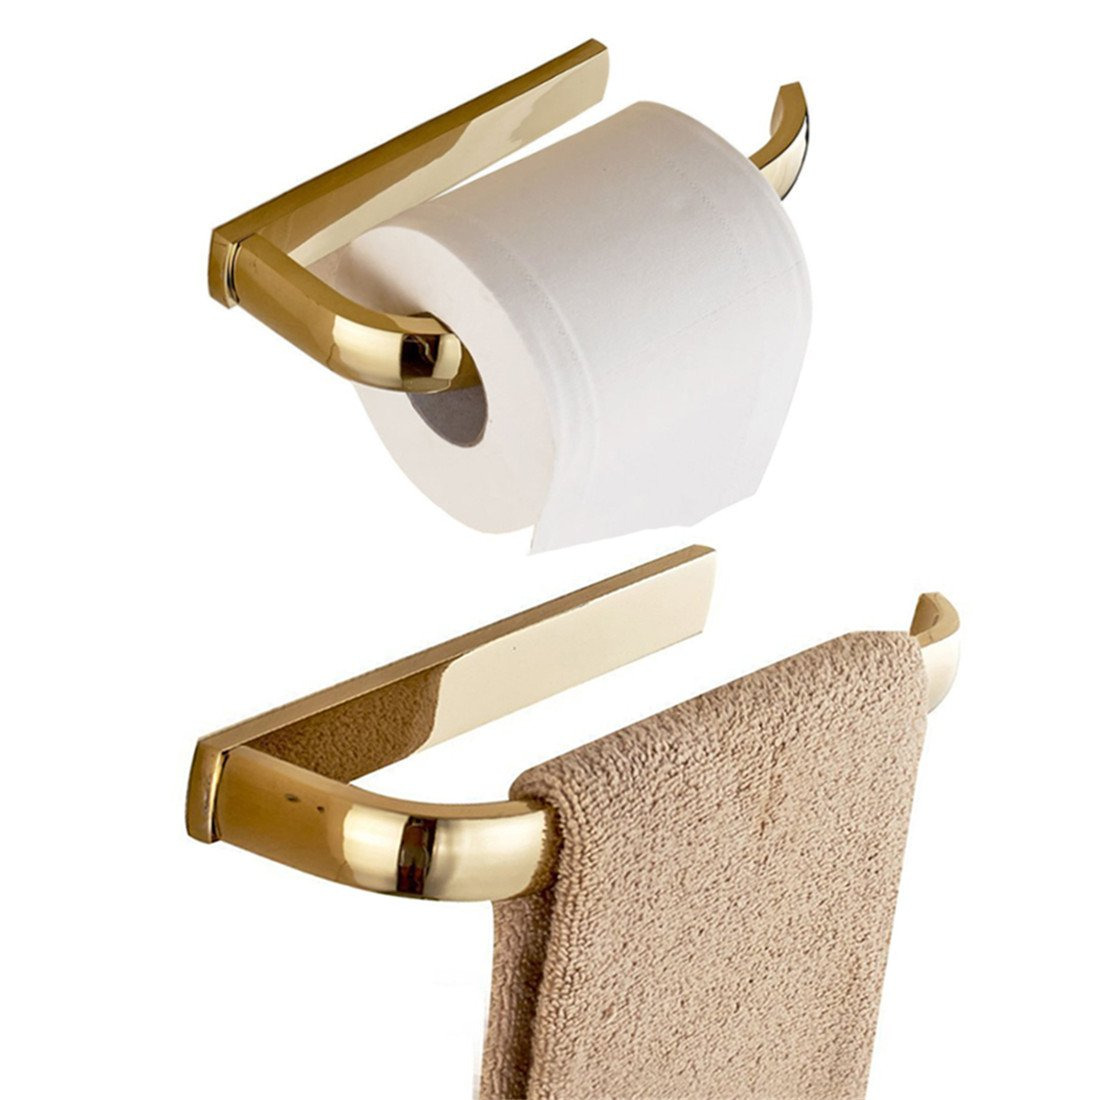 BigBig Home Polished Gold Finish Brass Material Lavatory Hardware Set Bath Toilet Roll Holders Towel Ring Contemprary Stand